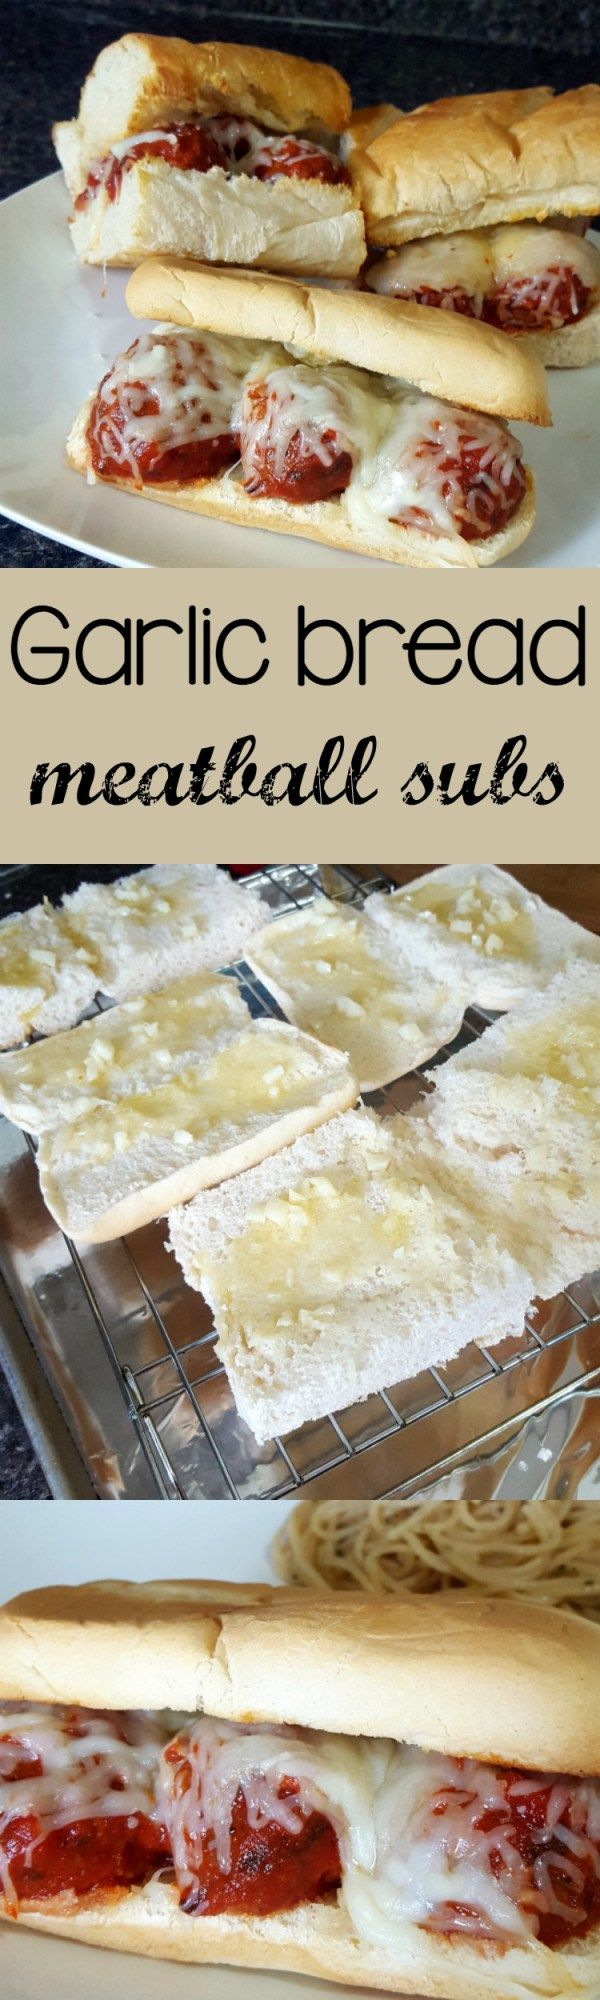 Garlic bread meatball subs - A delicious garlic bread smothered together with meatballs, and melted cheese. A new take on a classic sandwich.